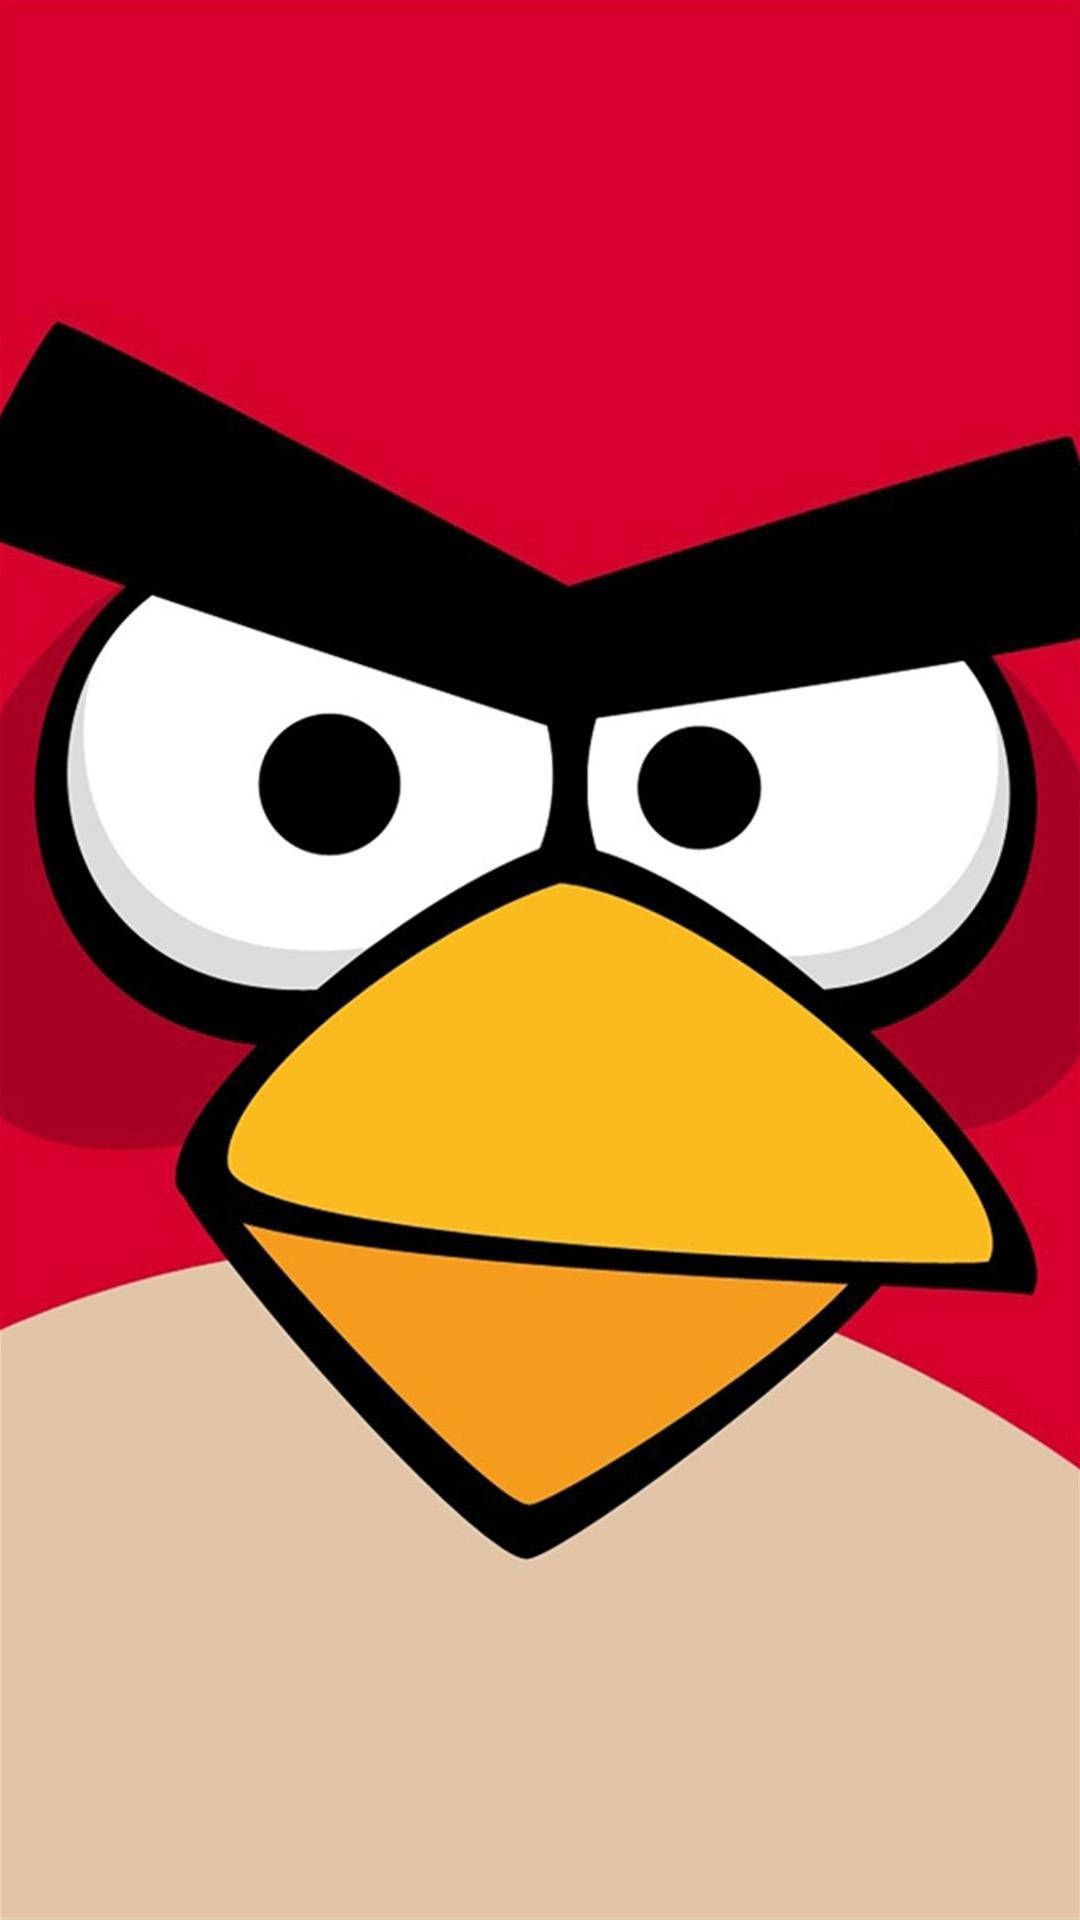 Samsung Galaxy S20 Ultra Wallpaper For Punch Hole Bird Wallpaper Cartoon Wallpaper Iphone 5 Wallpaper